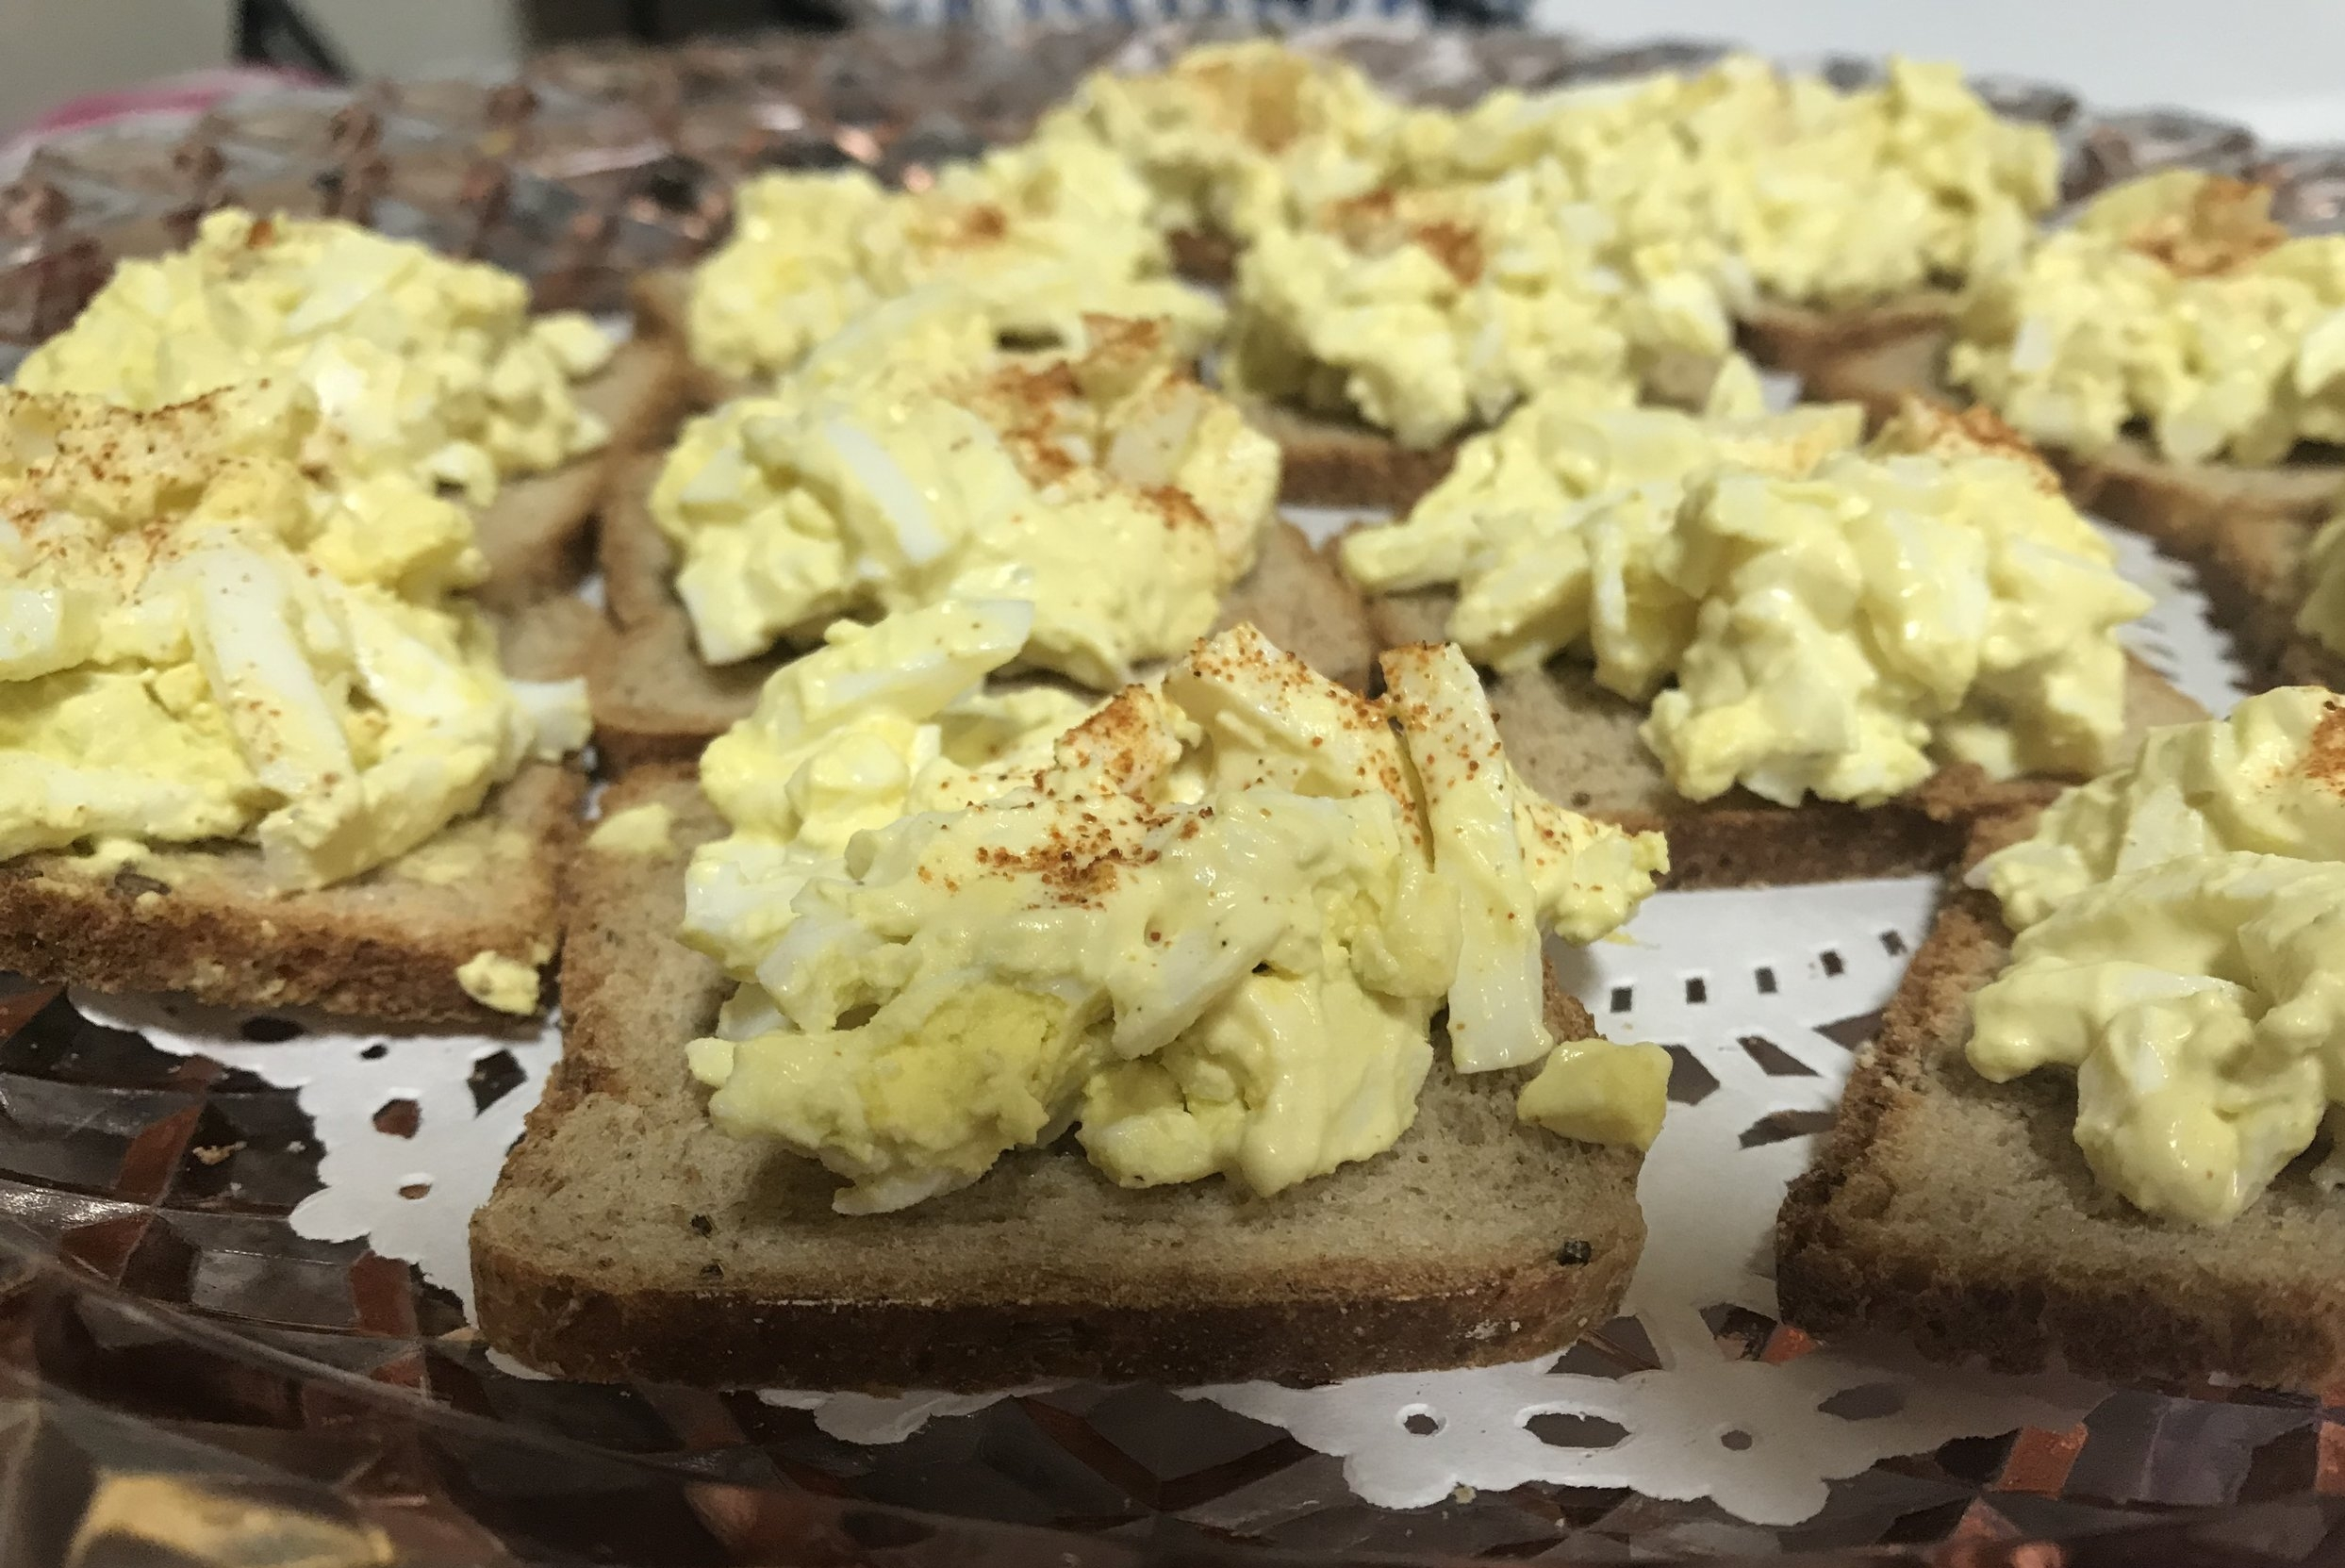 Sonja Nooman made these Norwegian egg salad dishes. She also helped serve food at the Scandinavian booth.